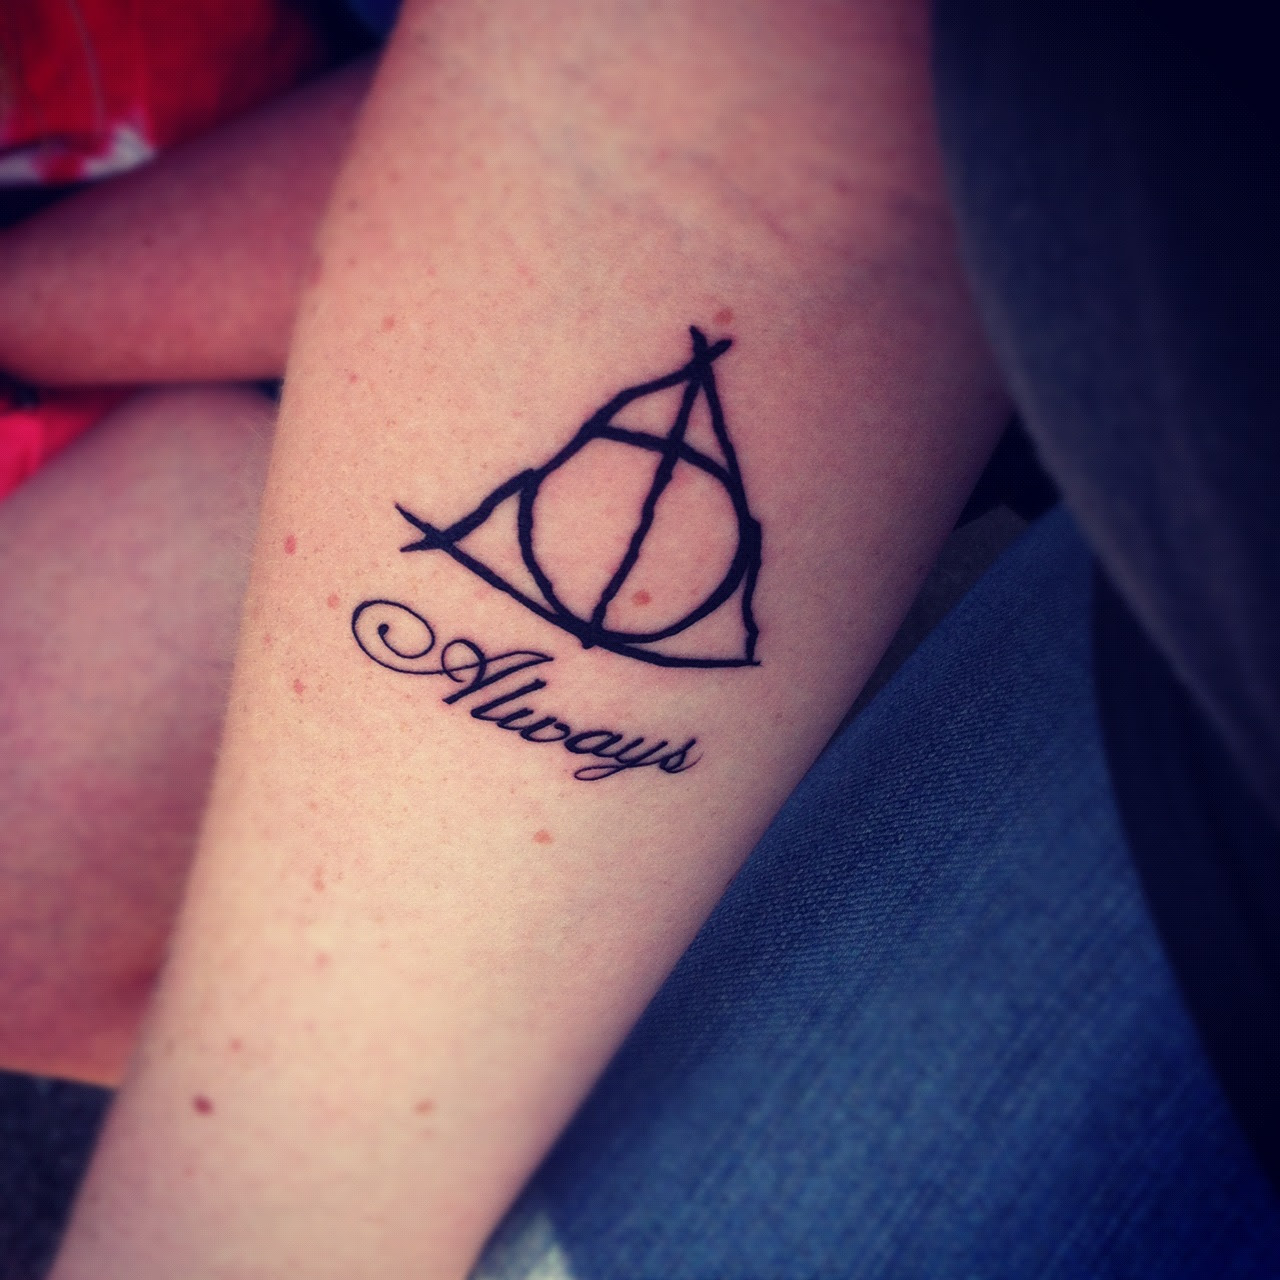 Cool Harry Porter Themed Tattoo Design On Inner Lower Arm Tattoomagz